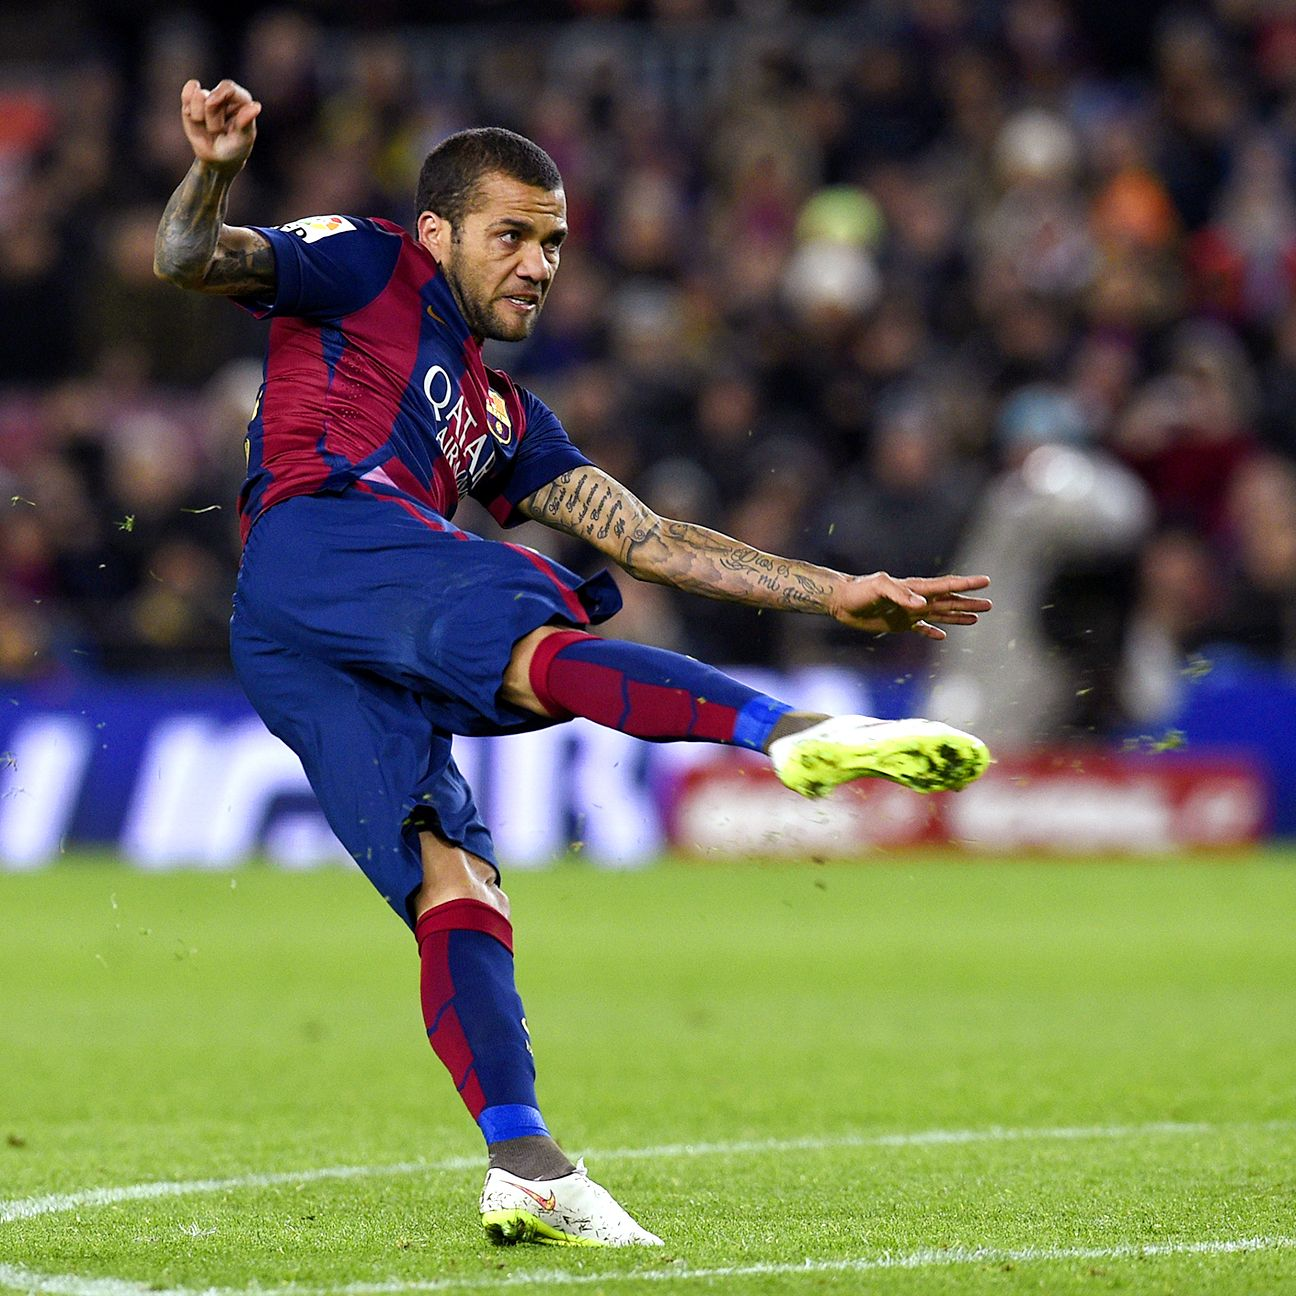 Dani Alves' current Barcelona contract expires at the end of the season.